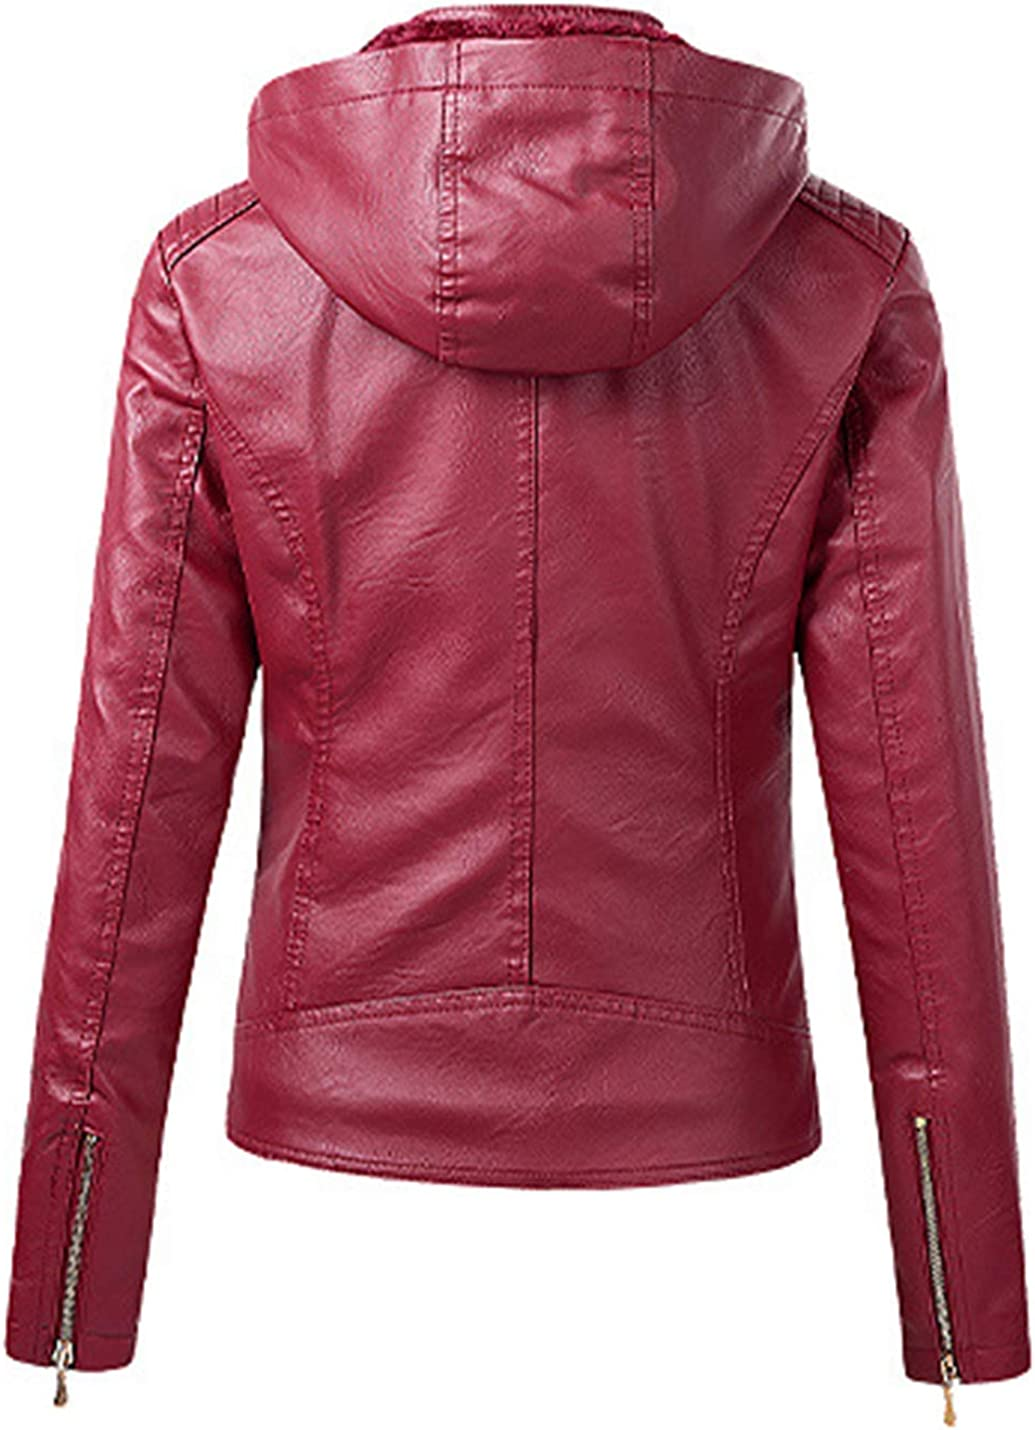 Jenkoon Women's Fur Lined Casual Short Hooded Faux Leather Jacket Short Thickened Coat